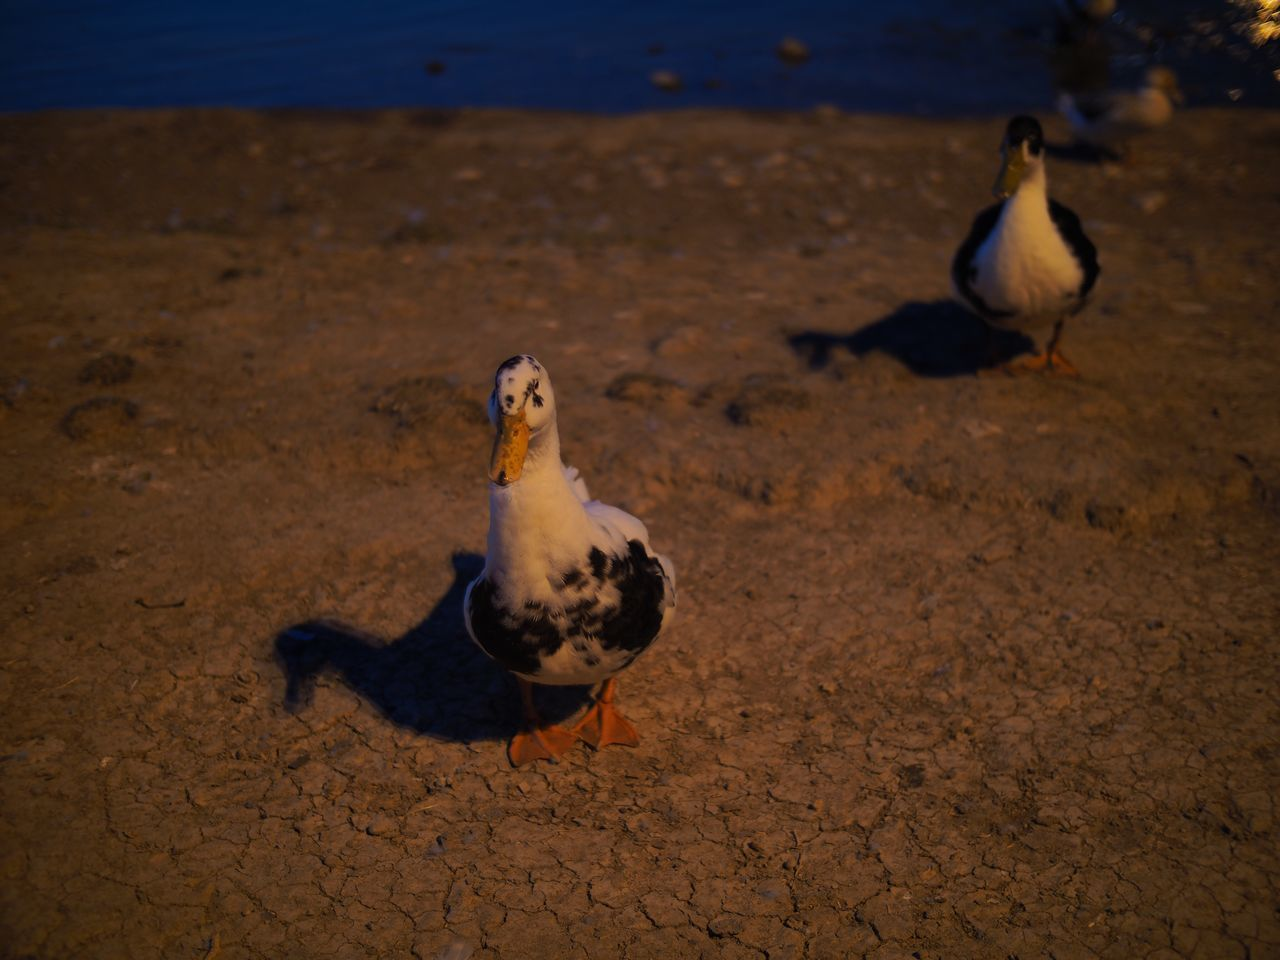 bird, animal themes, animals in the wild, animal wildlife, duck, no people, nature, seagull, outdoors, water, day